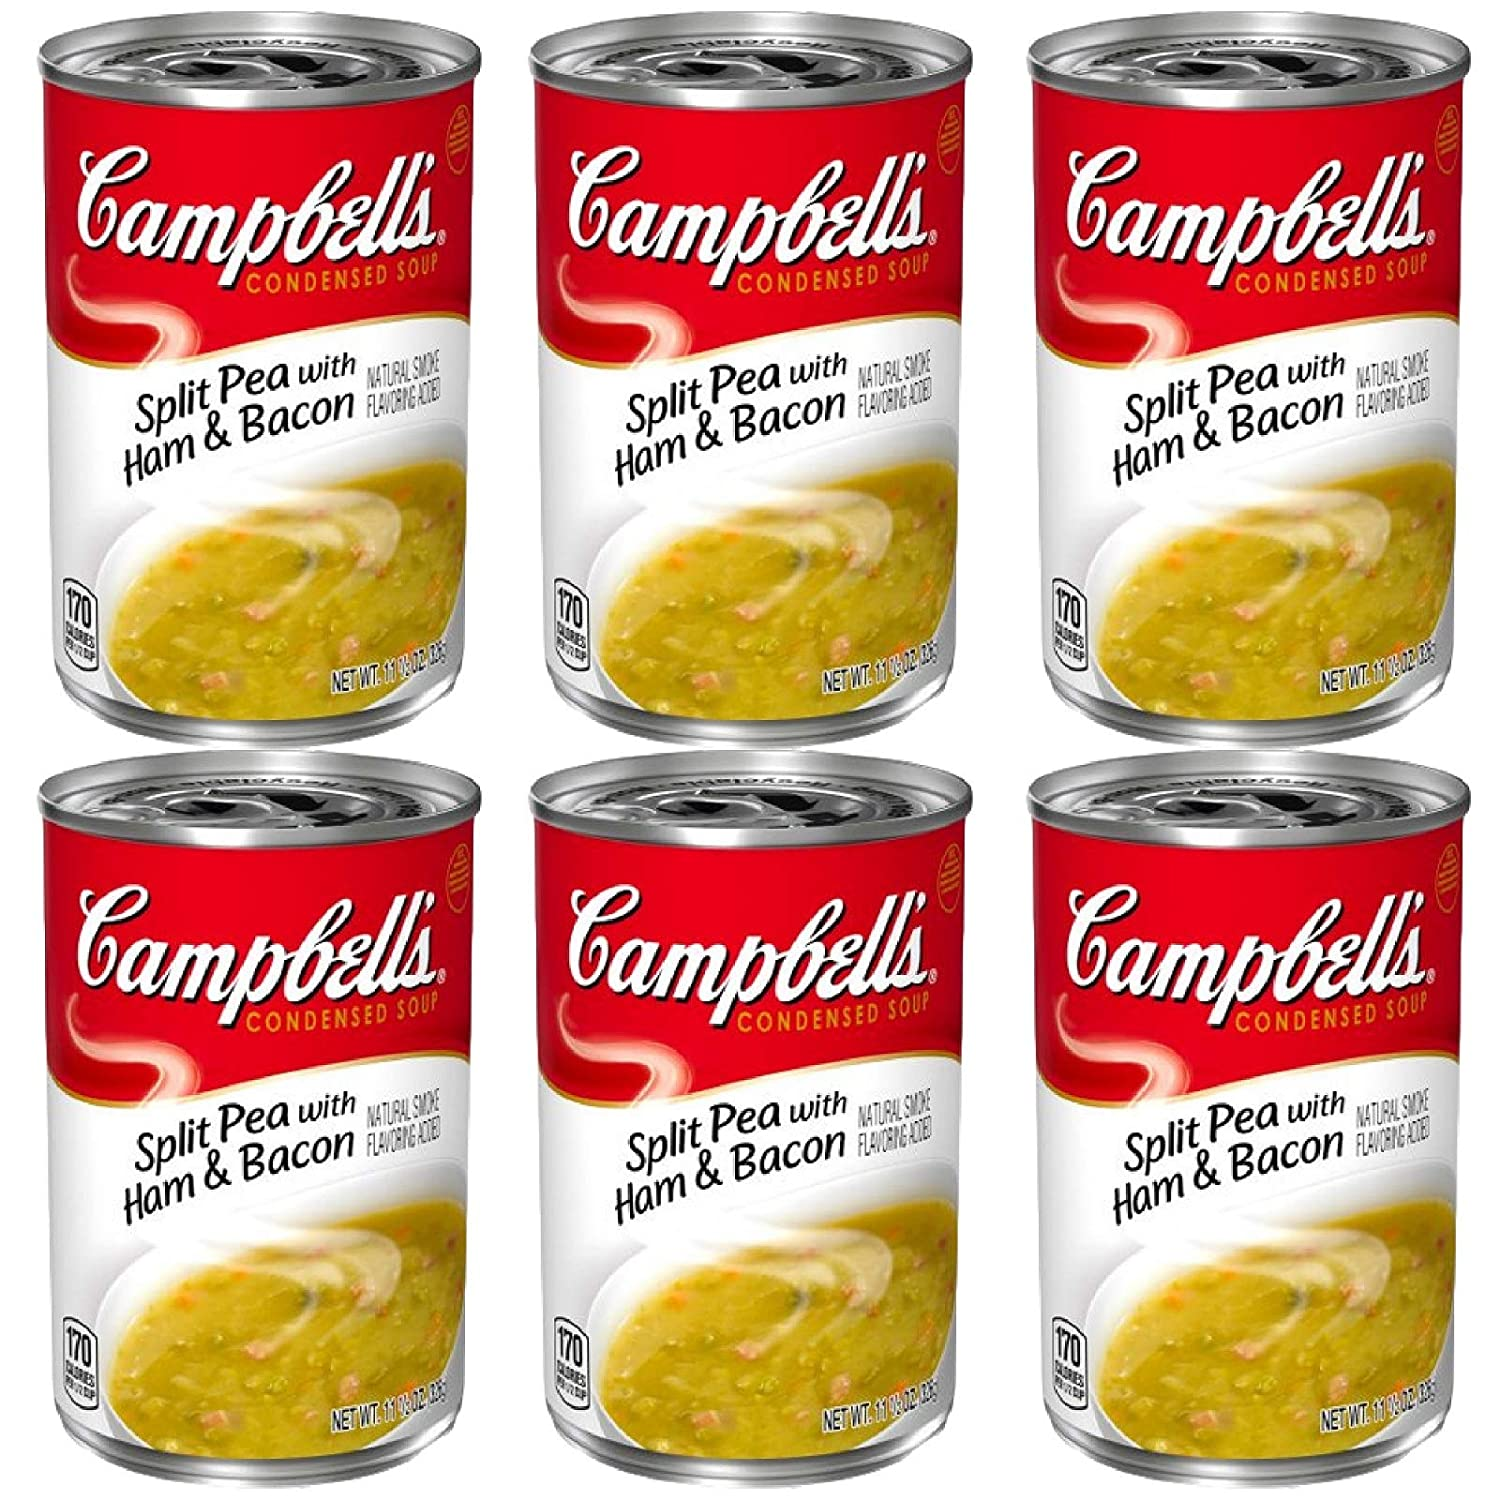 Indianapolis Mall Campbell's Condensed Split Pea Ham Soup 11.5oz Can Bacon free shipping